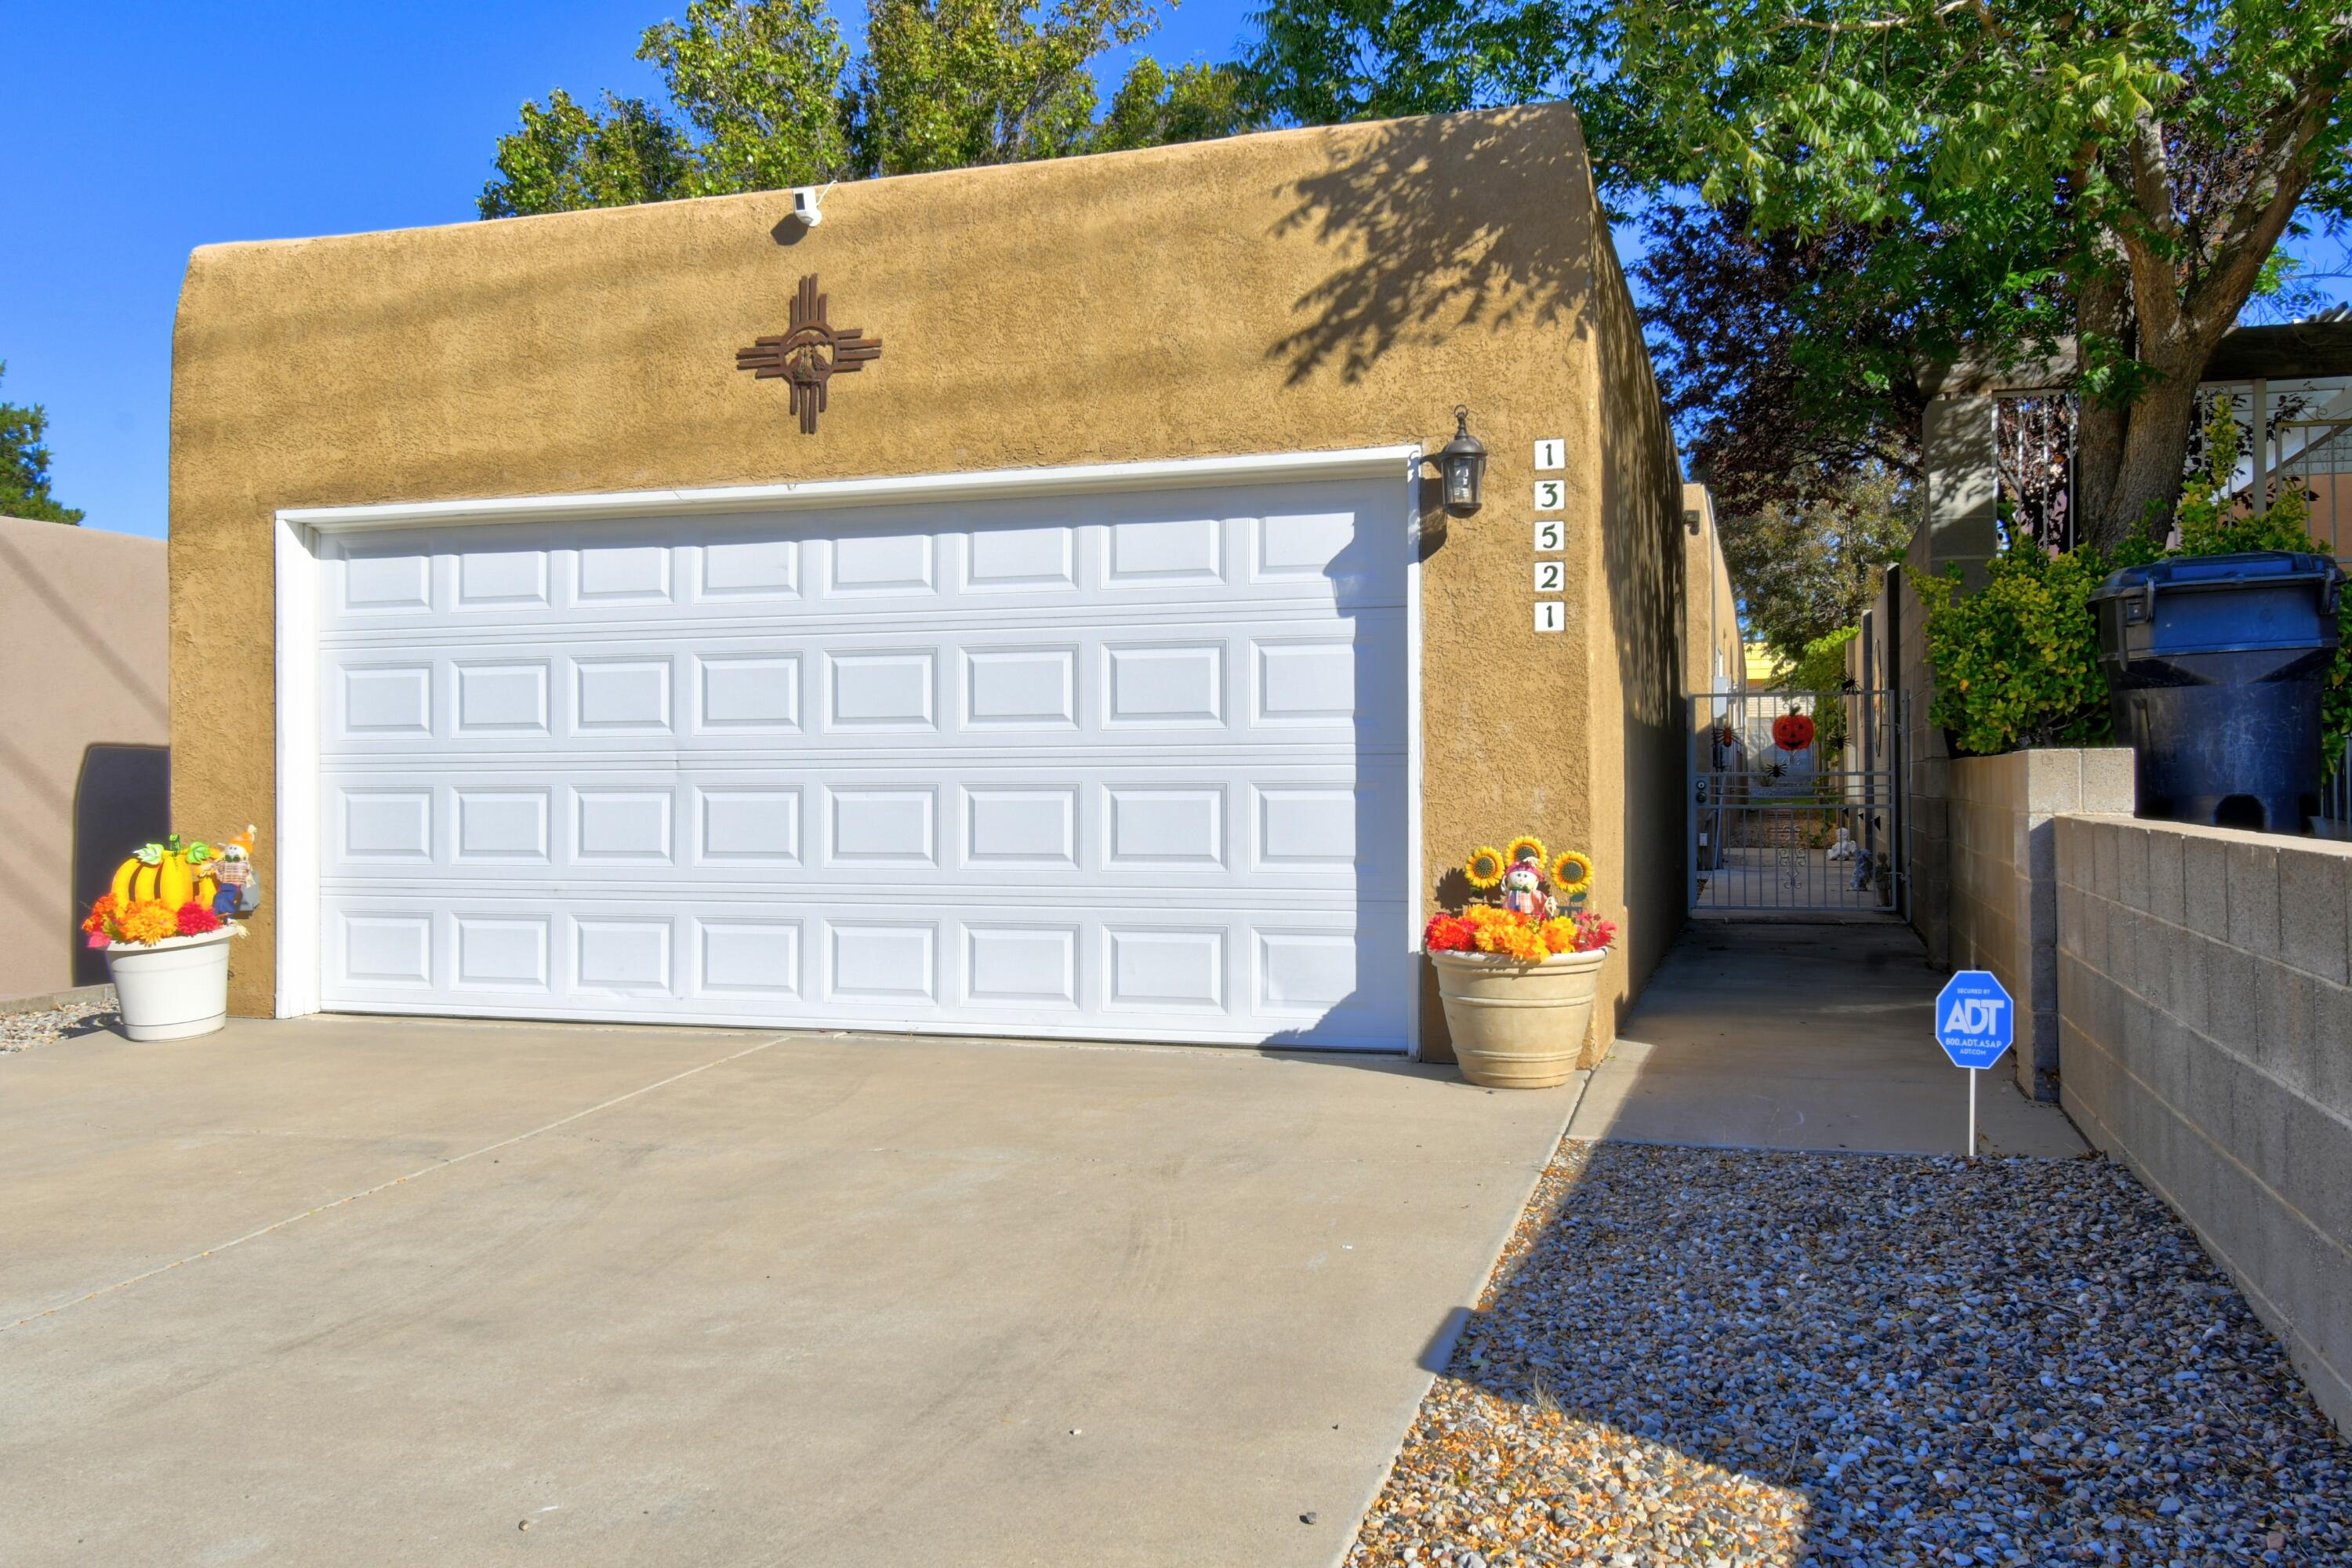 Beautifully cared for home in the NE heights! Beautiful kitchen with custom cabinets and granite counter tops.  Open to spacious living area with cozy kiva fireplace. Three nice sized bedrooms and two full large bathrooms.  Maser has good sized walk in closet with sliding door to private backyard with covered patio including exposed vigas.  Only detached home on street with privacy all around.  Once you arrive in the garage you are fully enclosed in outside living space that leads to home.  Beautiful wood laminate and tile throughout.   New refrigerated air to keep you cool in the hot summers and the kiva fireplace to keep you toasty in the cold winter months! Come see this home. It will not disappoint!